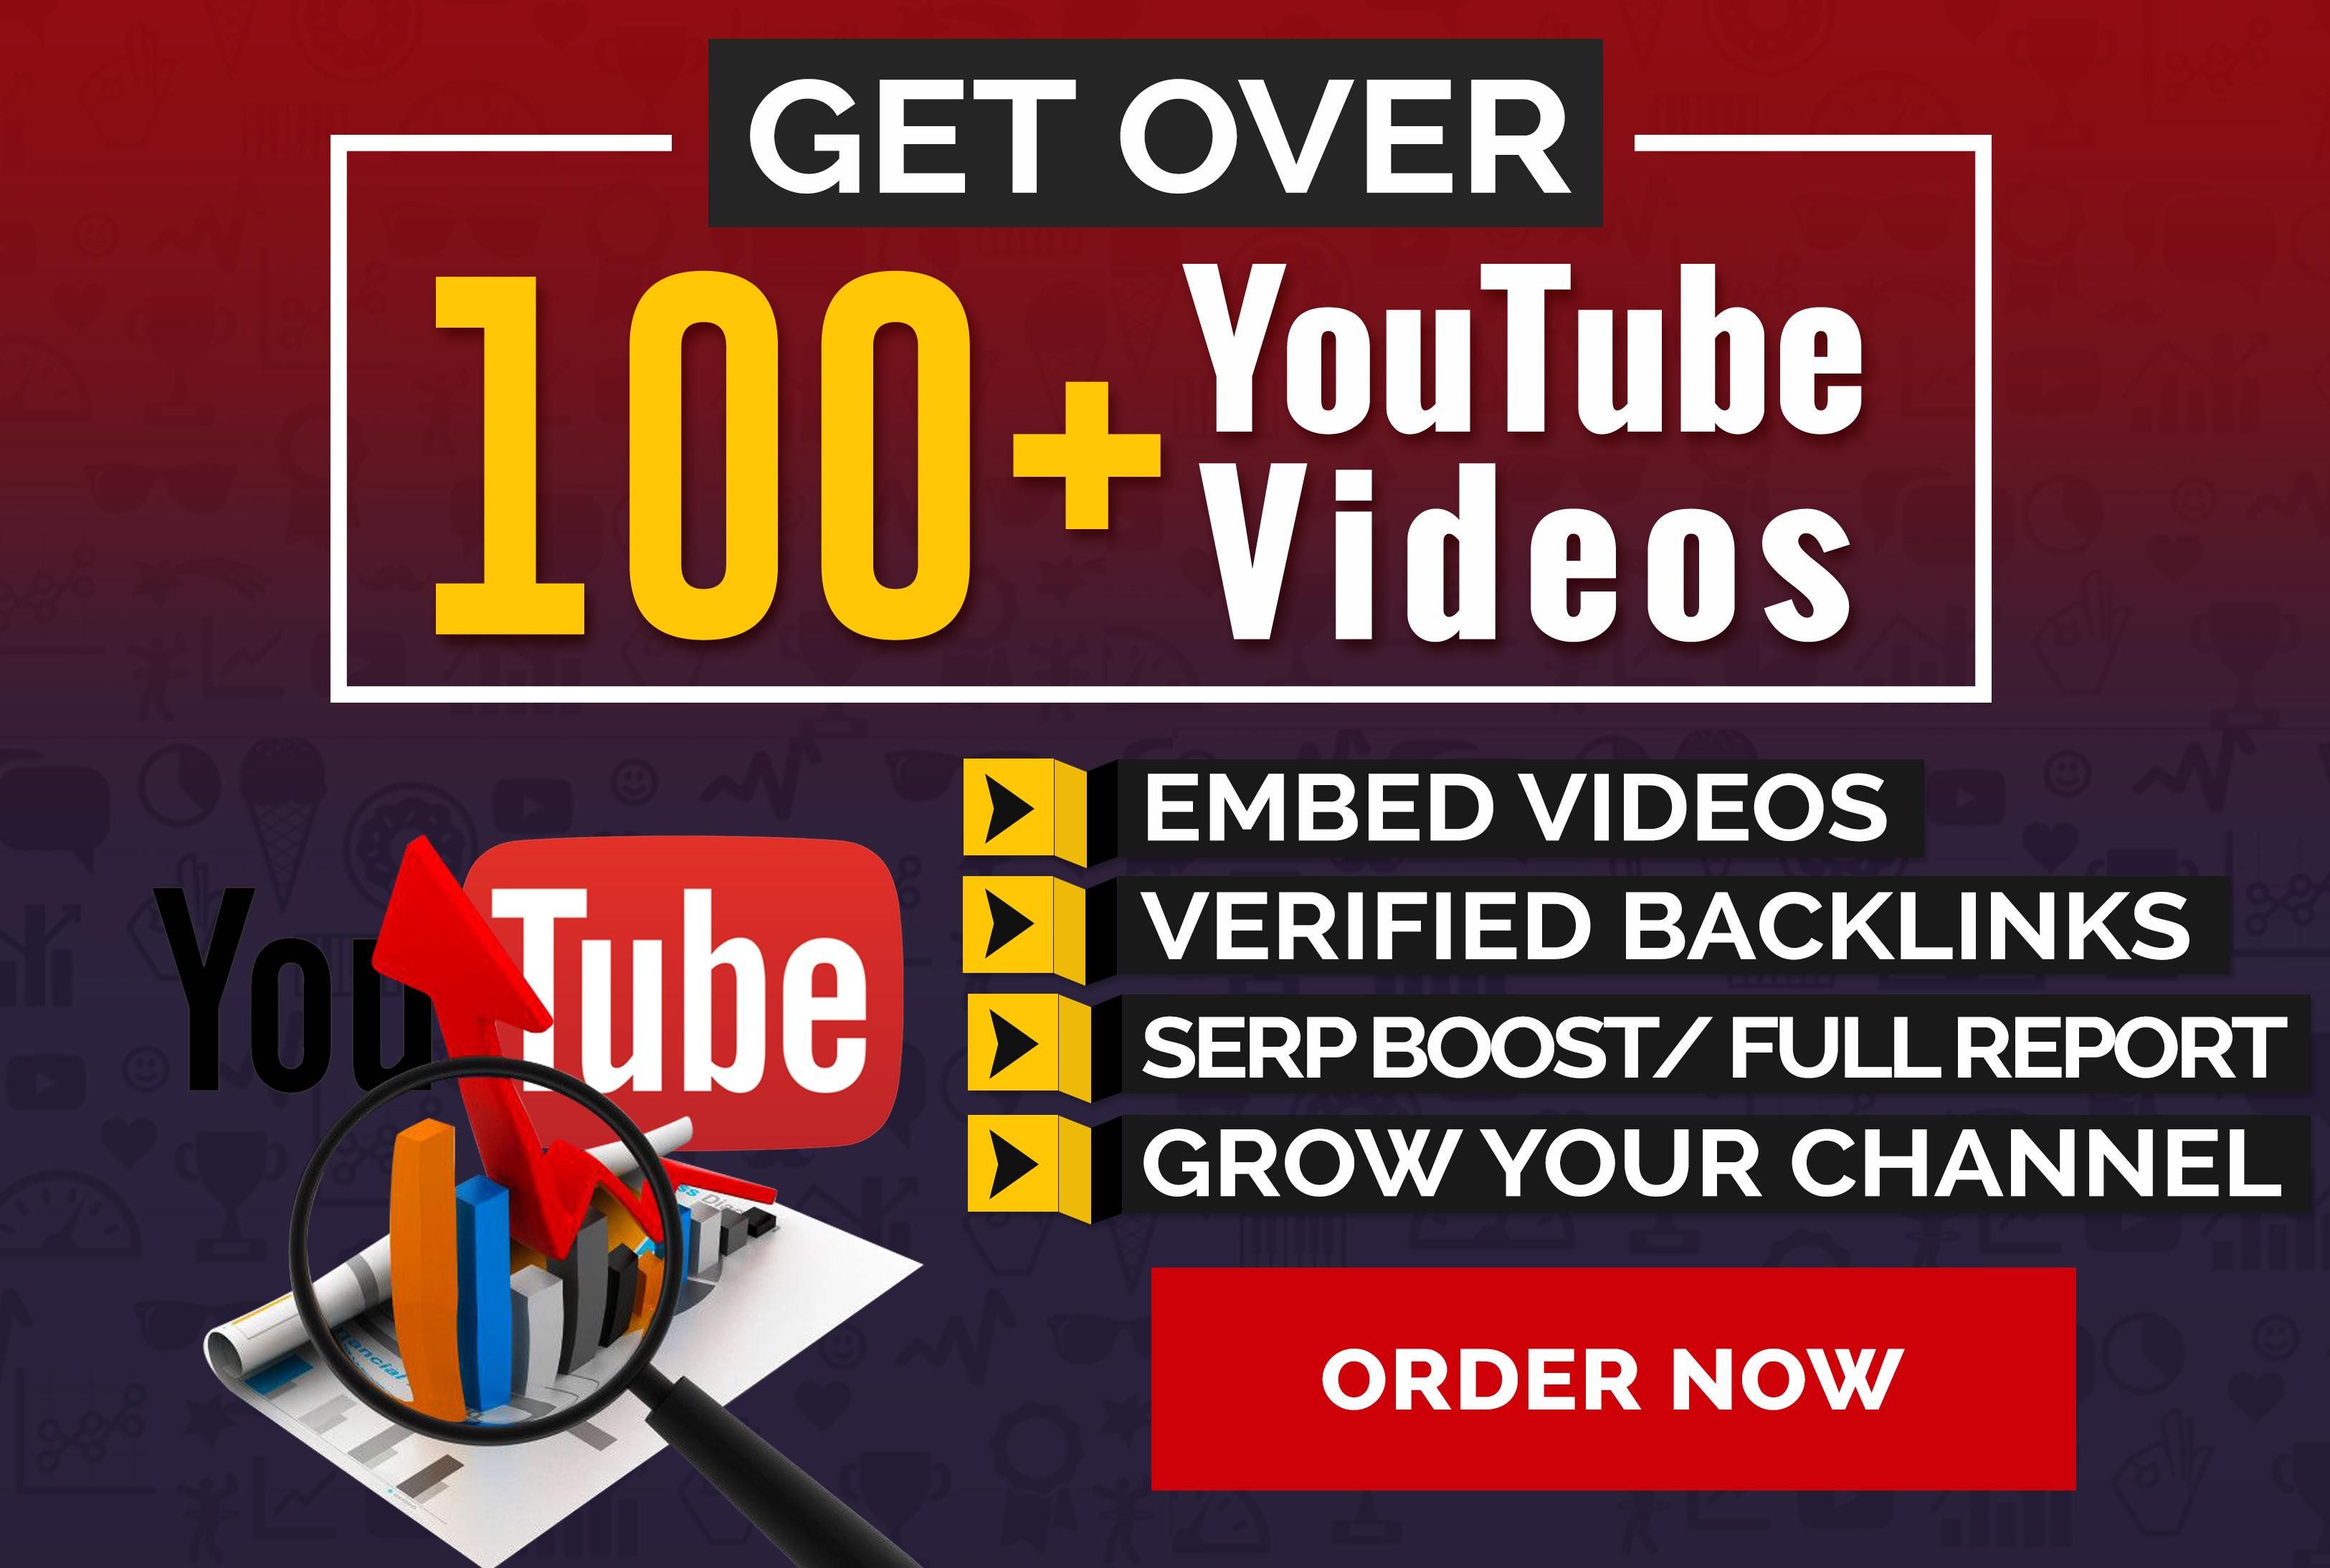 Embed 500 YouTube Video Backlinks With Free Indexing!